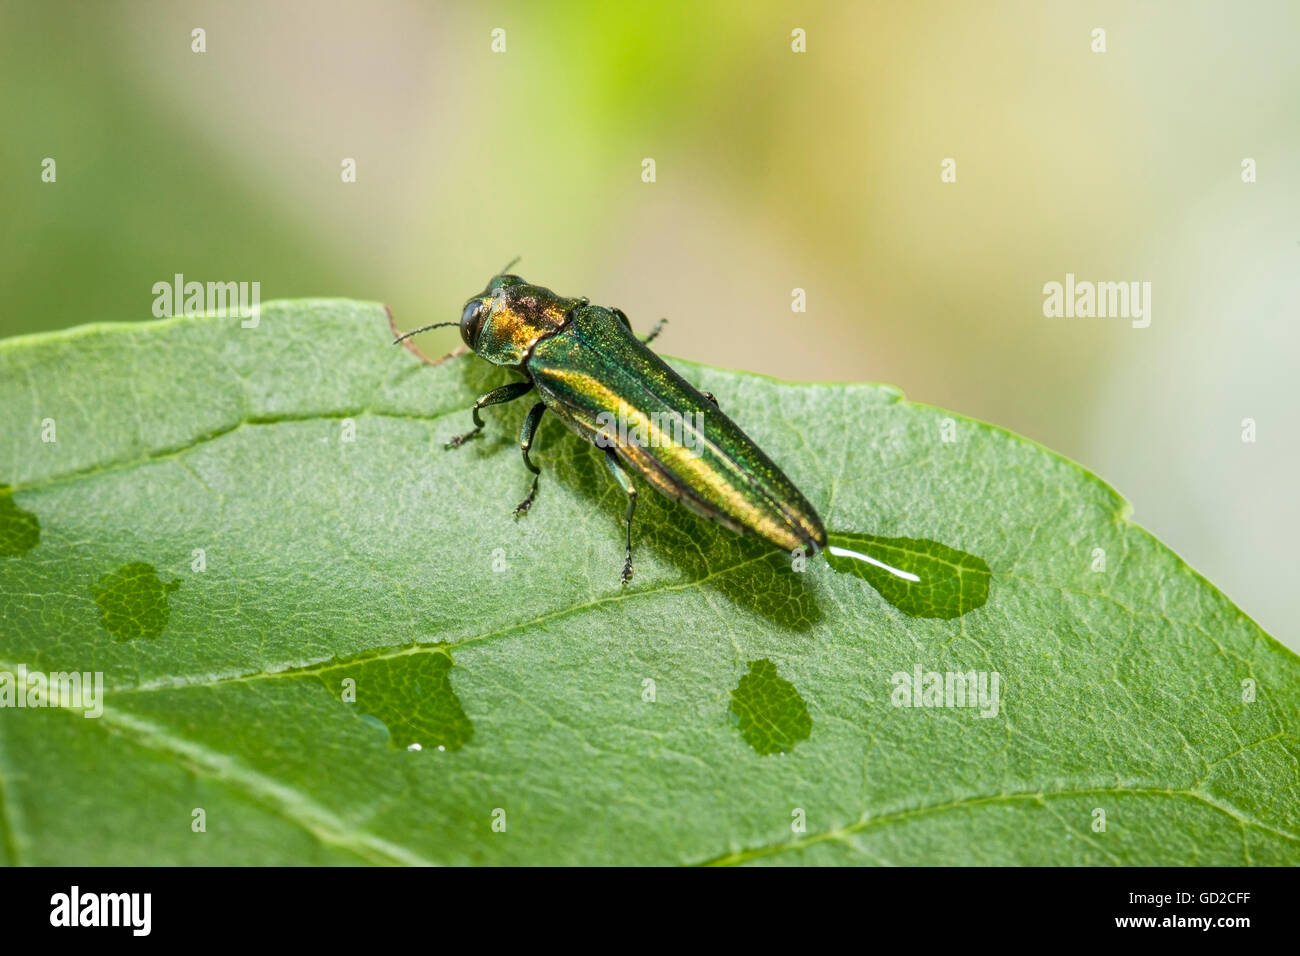 Emerald Ash Borer (Agrilus planipennis), feeding on ash leaves in tree top; Oak Creek, Wisconsin, United States - Stock Image